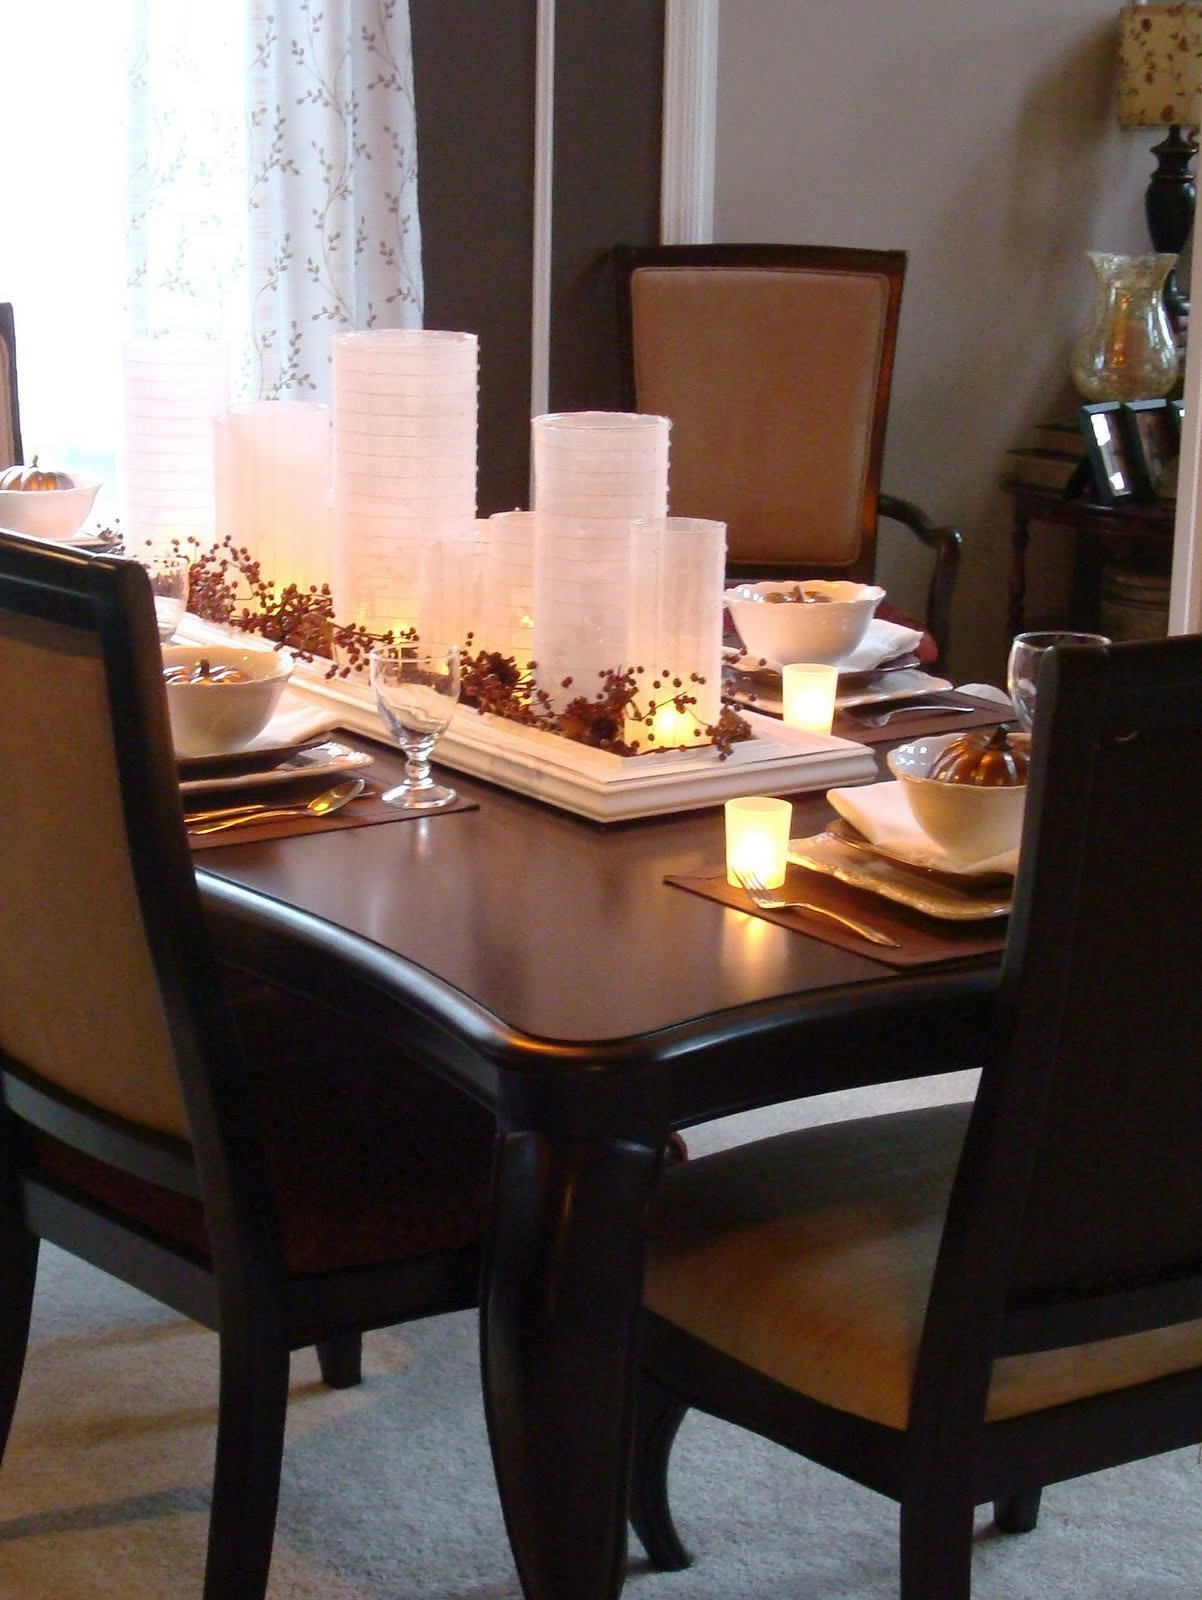 Decor for Dining Room Tables New Beautiful Centerpieces for Dining Room Tables